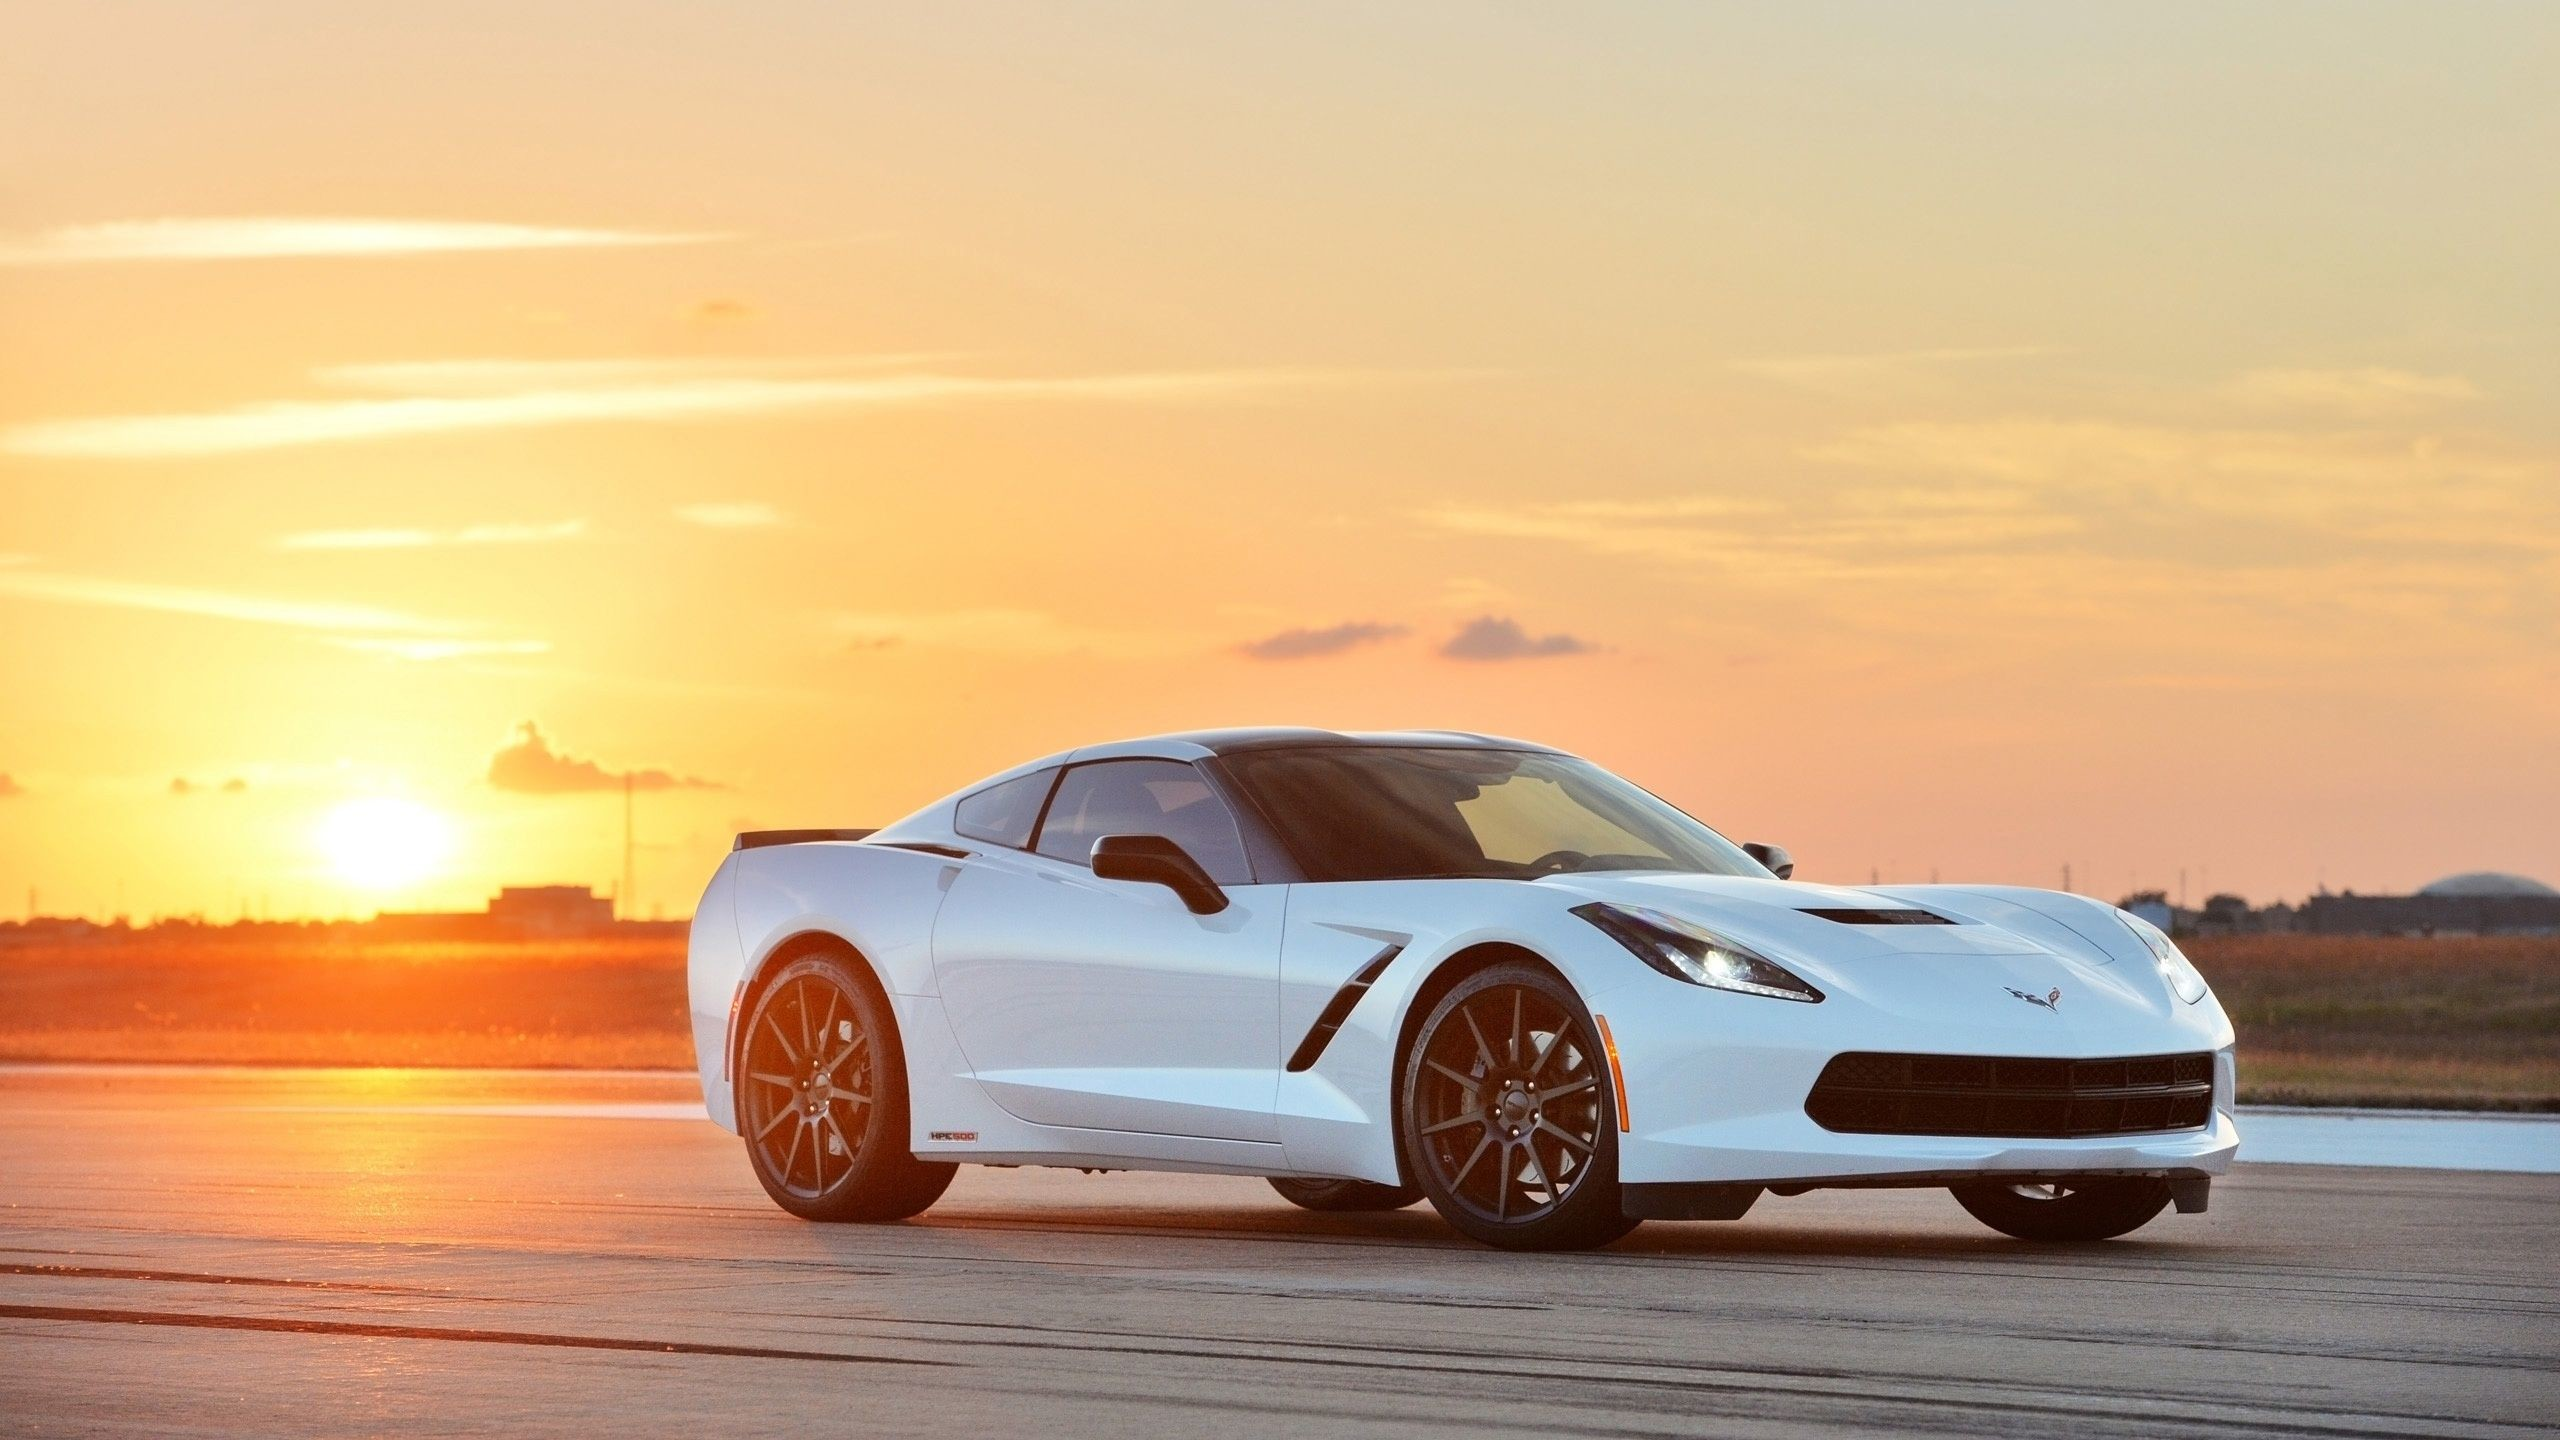 2560x1440 Corvette Stingray 2017 Wallpapers HD